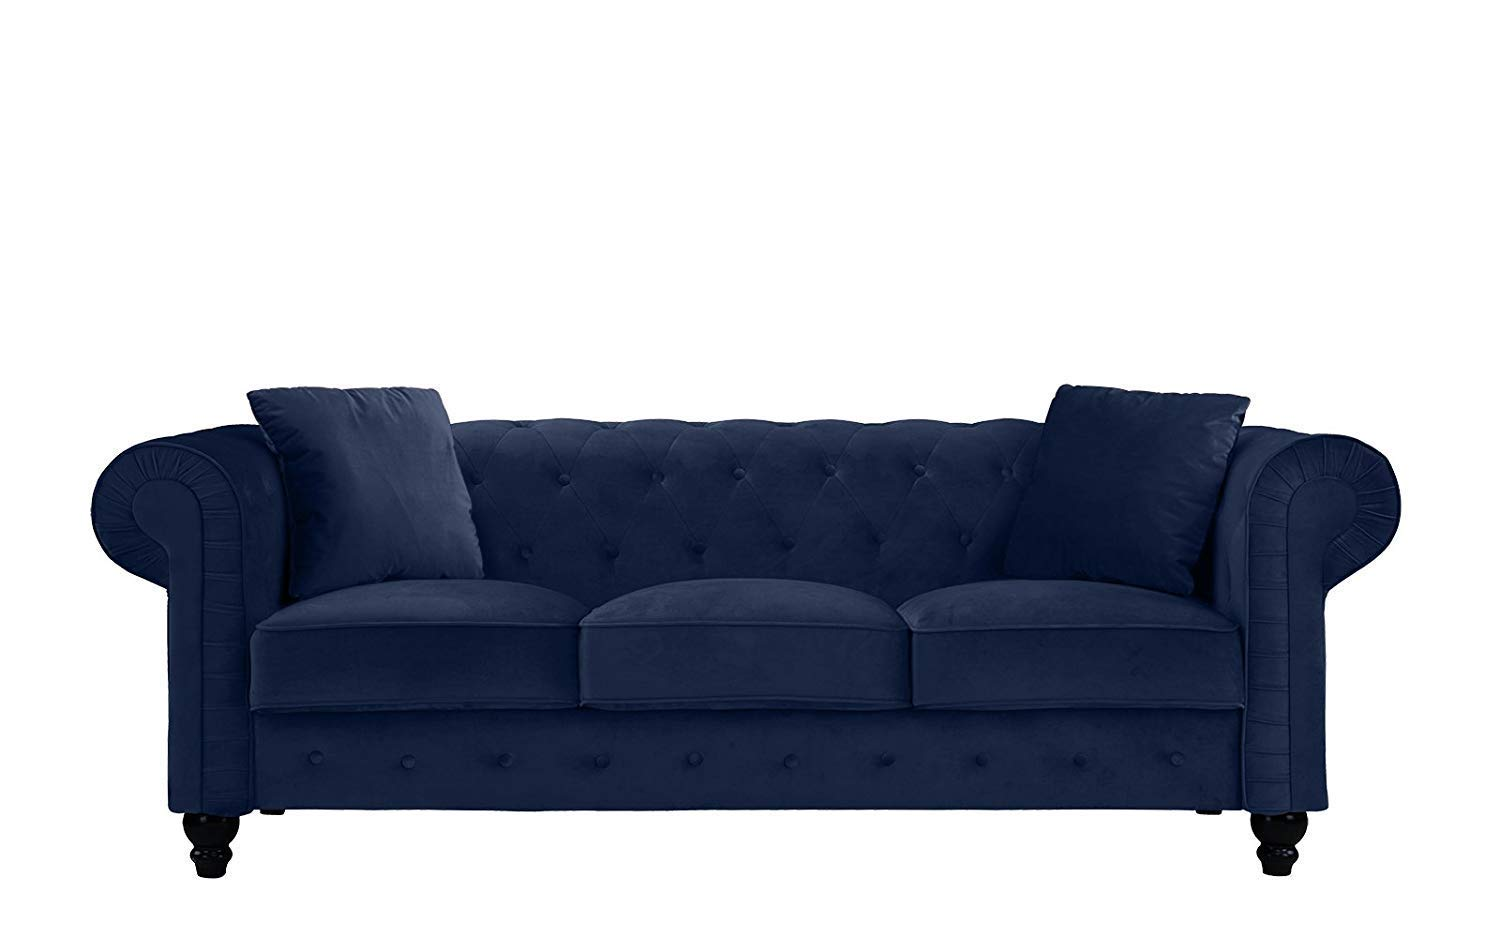 Ultra Soft and Comfortable Sofa Chesterfield Style Large Roma Furniture Classic Velvet Scroll Arm Tufted Buttom Sofa Upholstery (Blue)